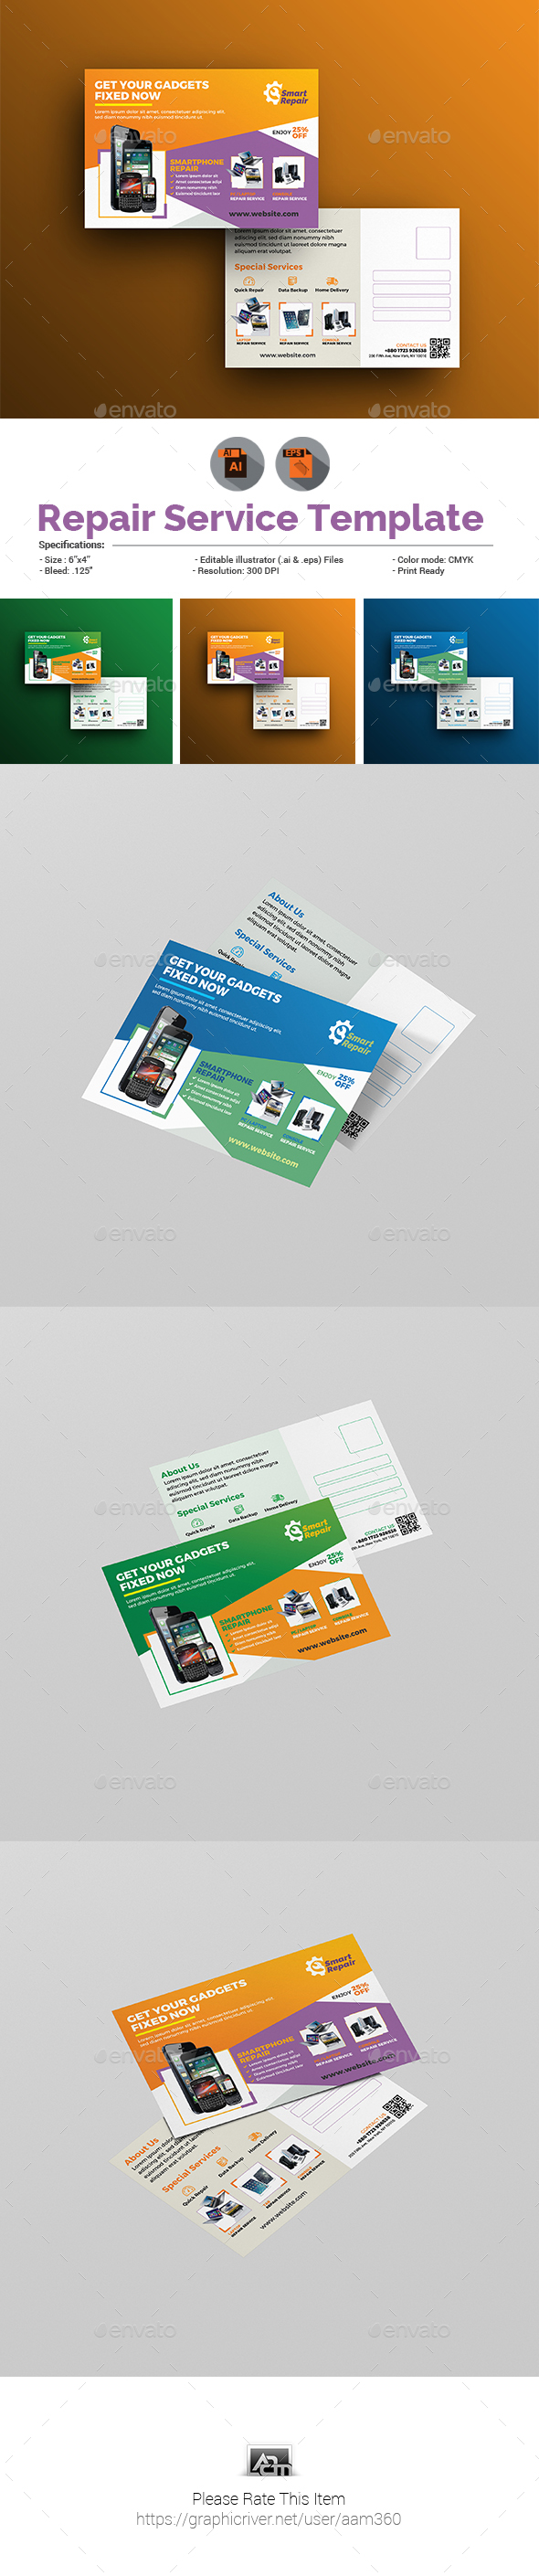 Repair Service Postcard Template - Cards & Invites Print Templates